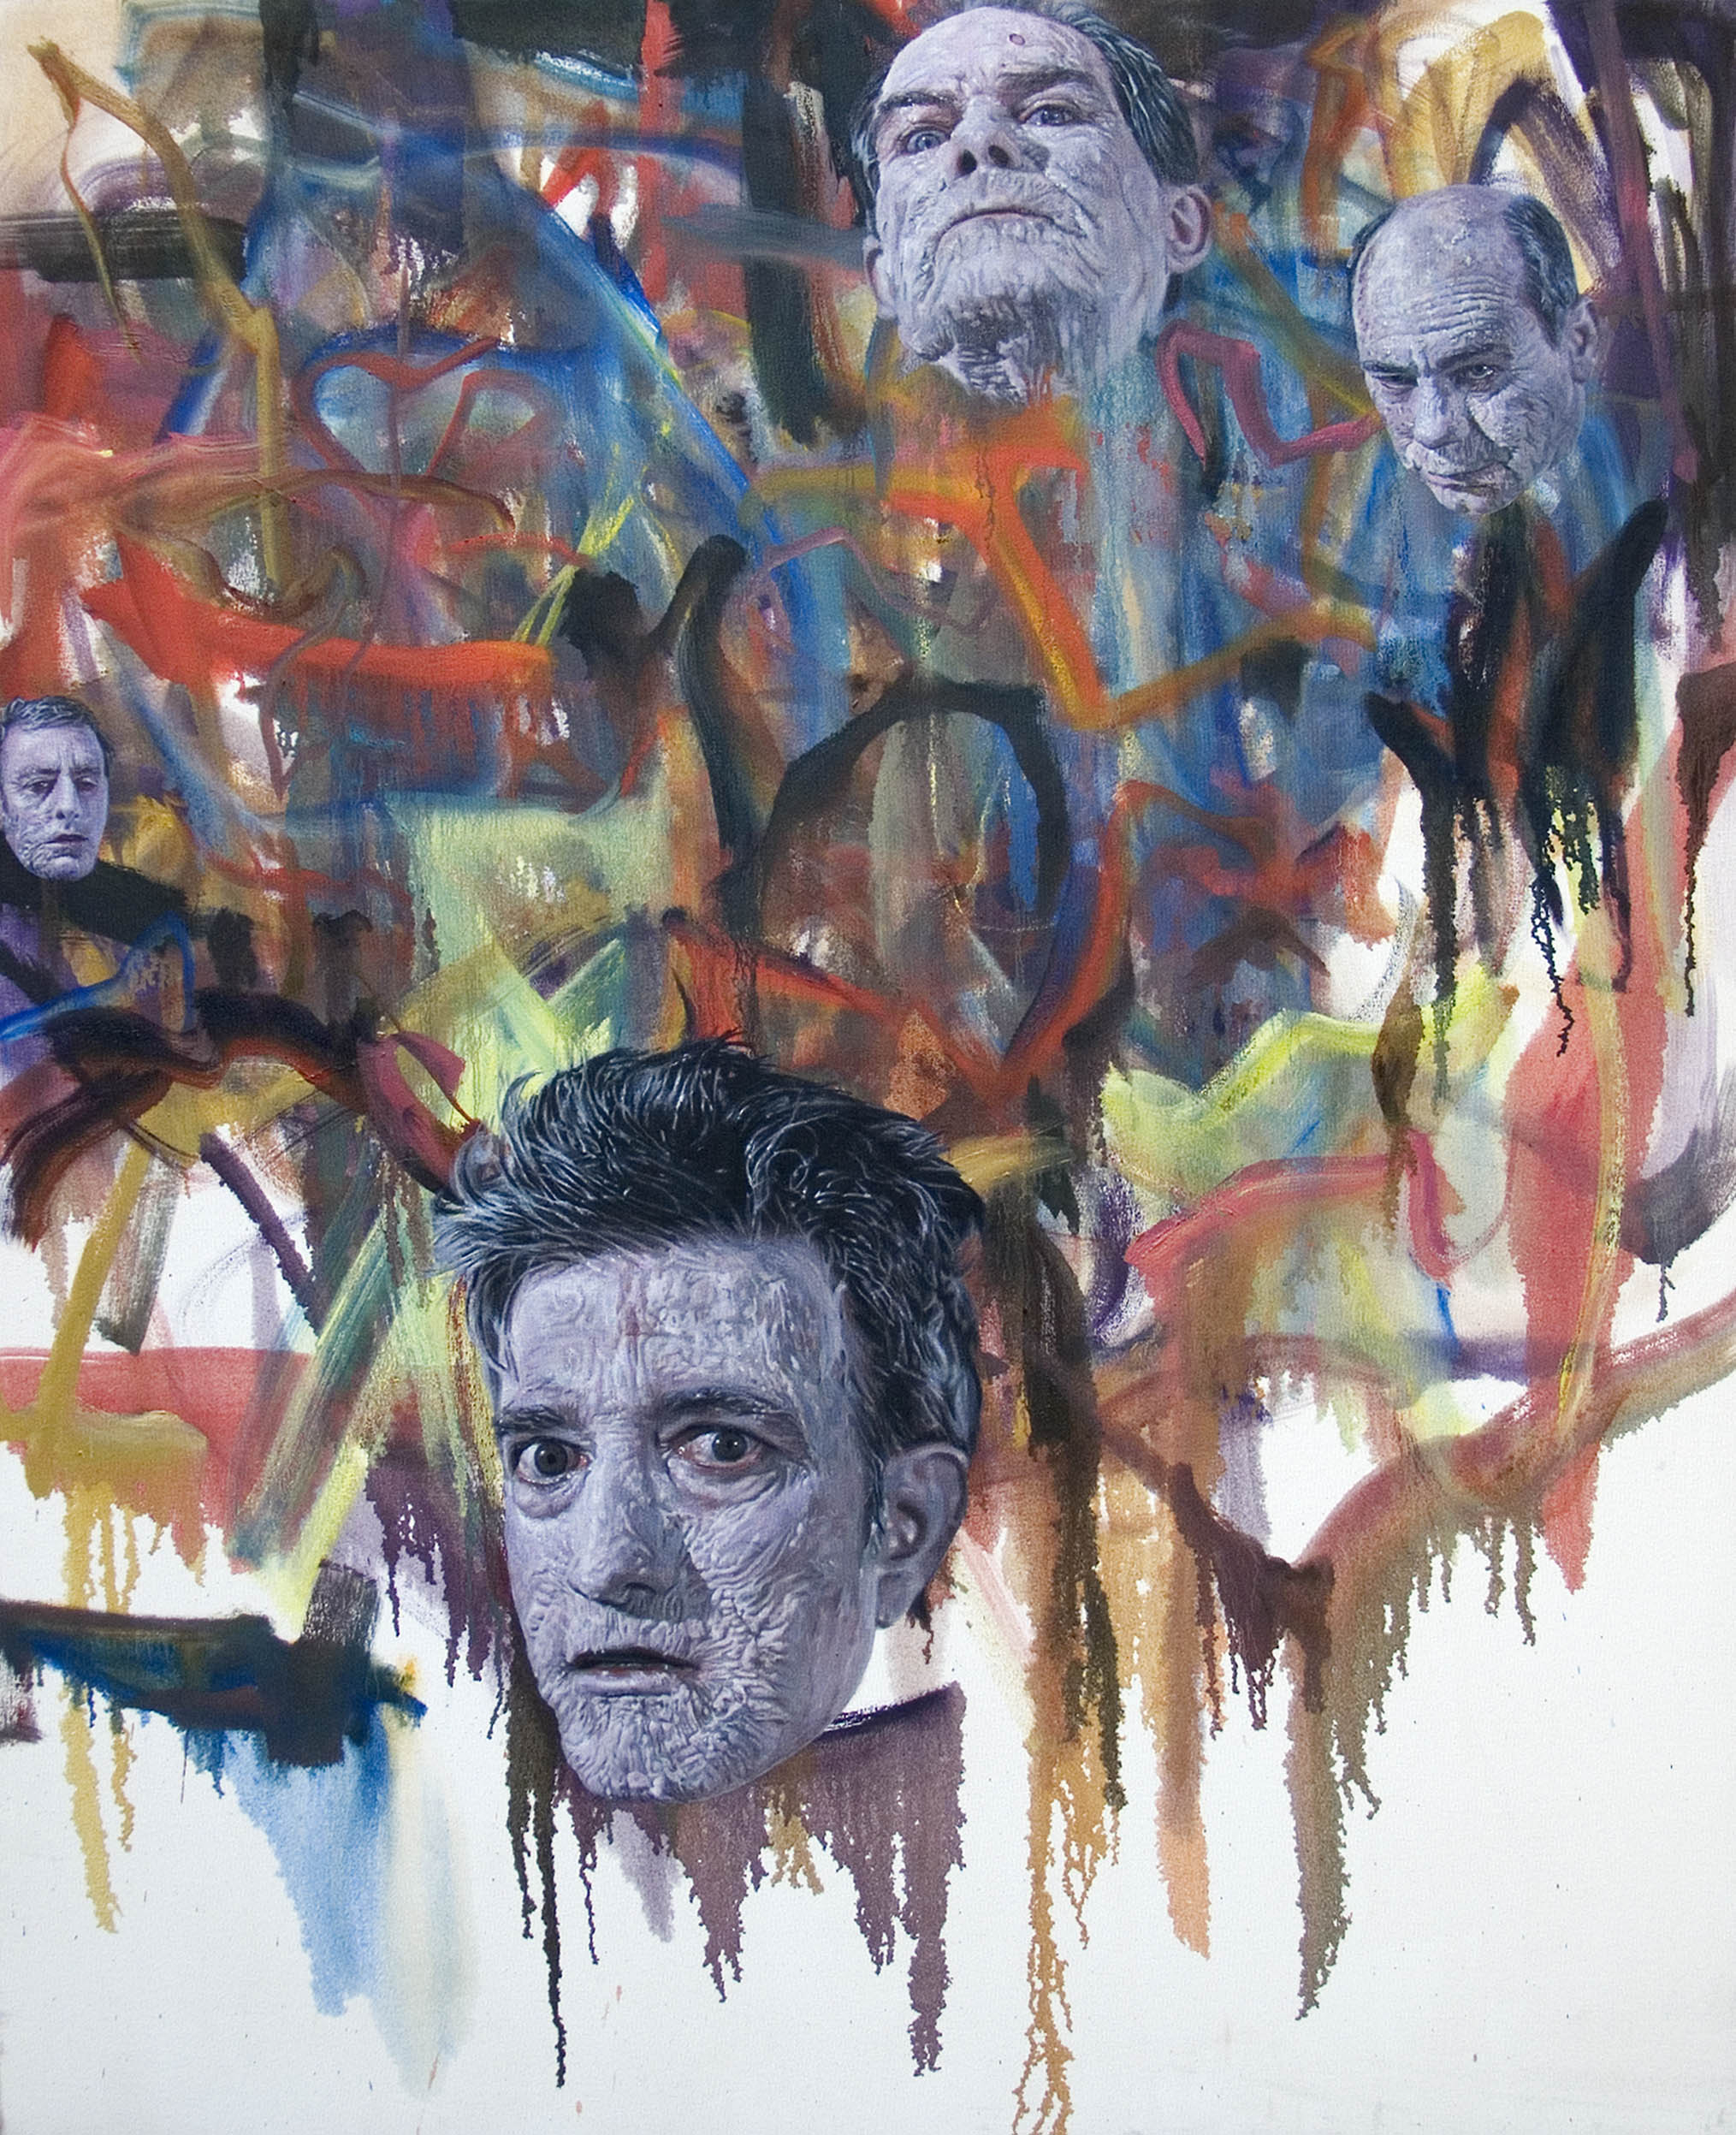 Zombie painting #3, 2007 oil on canvas 152,4 x 122 cm - 60 x 48 inches